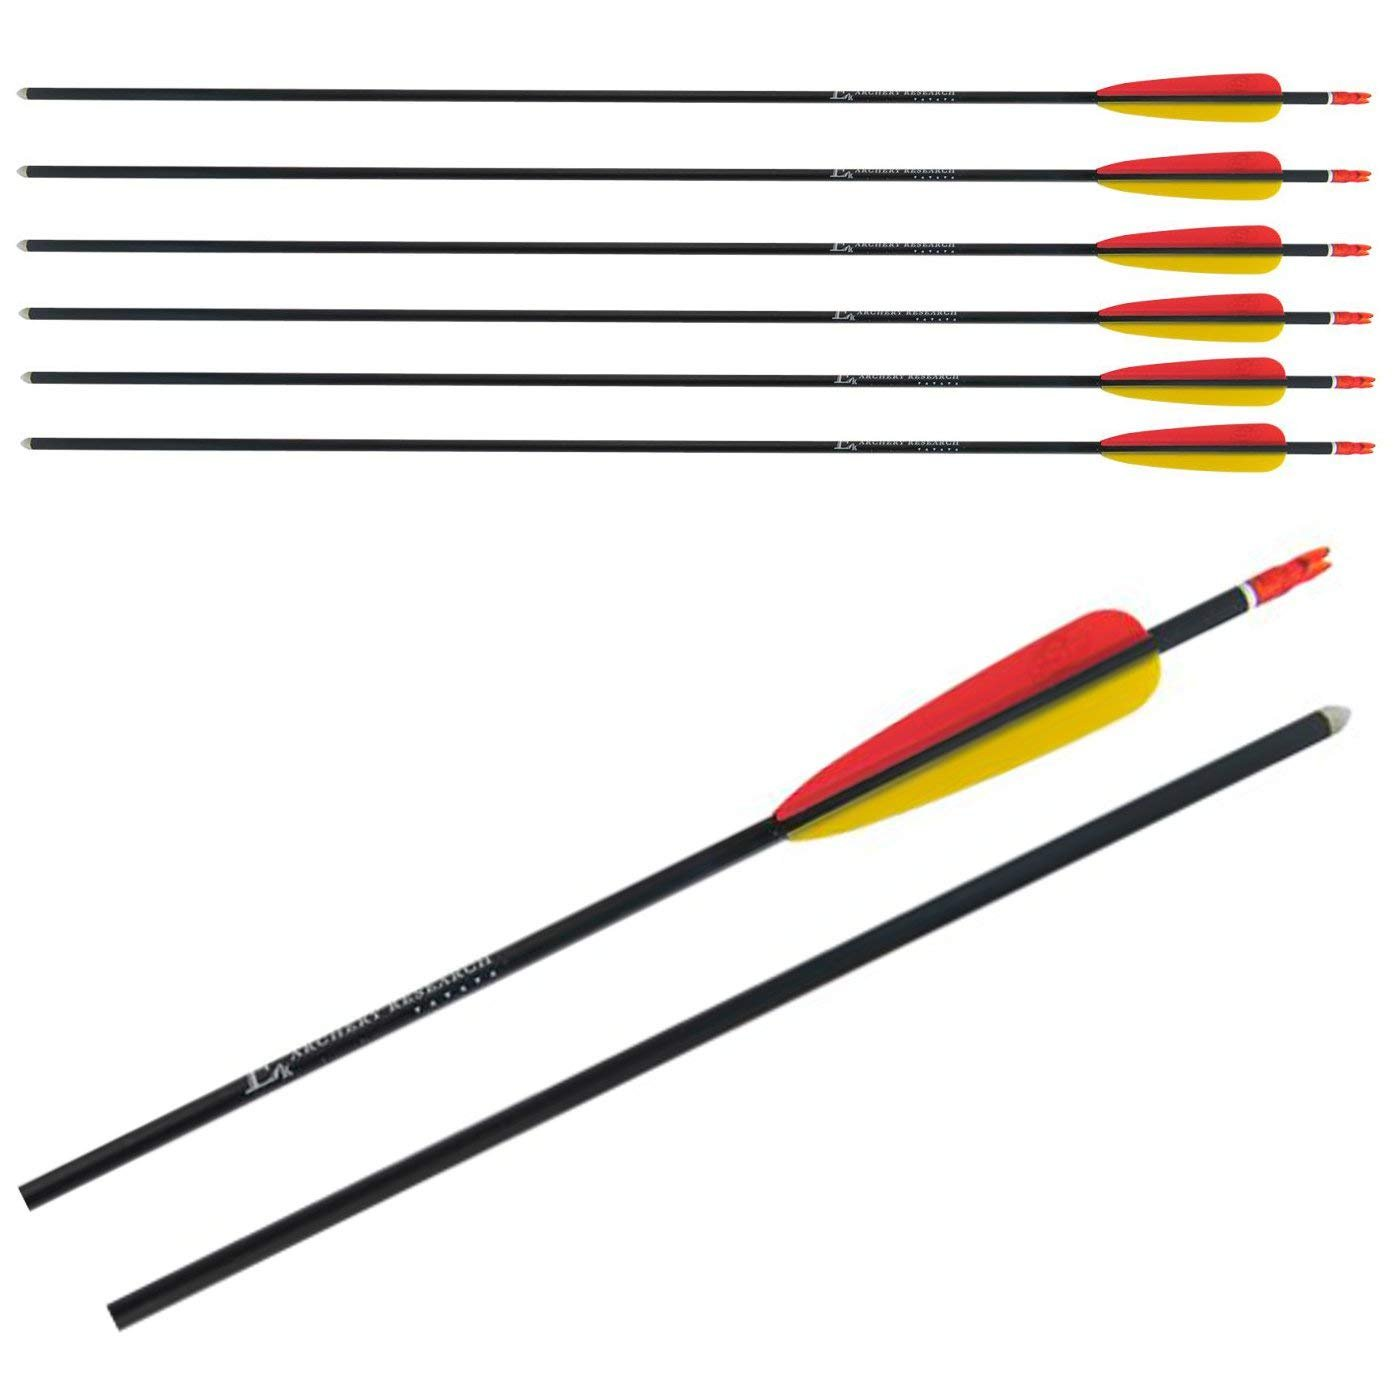 EK Archery Aluminium Arrows 30in Black - AirGuns-Liverpool